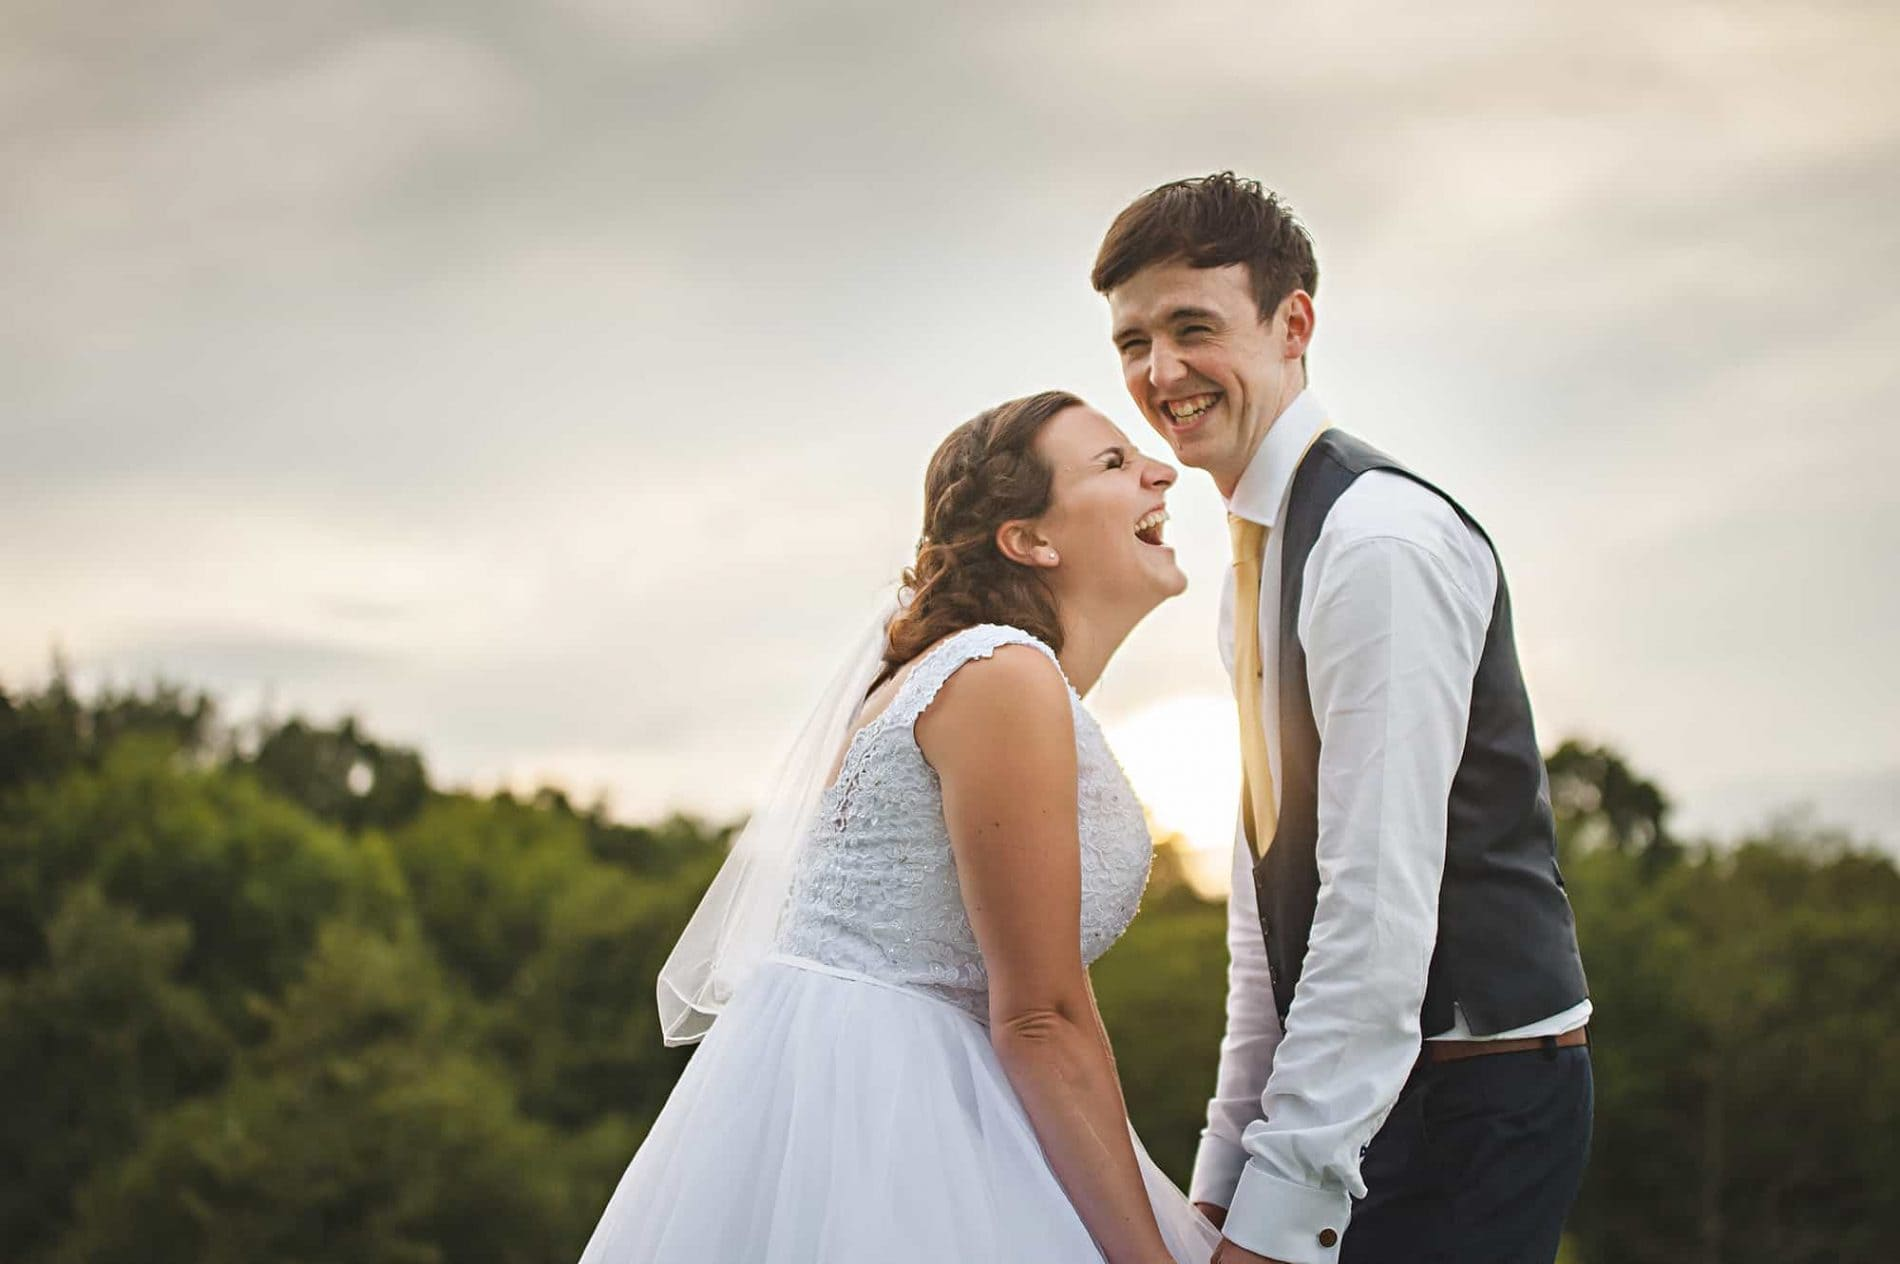 Essex wedding photography - couple laughing together and holding hands at sunset